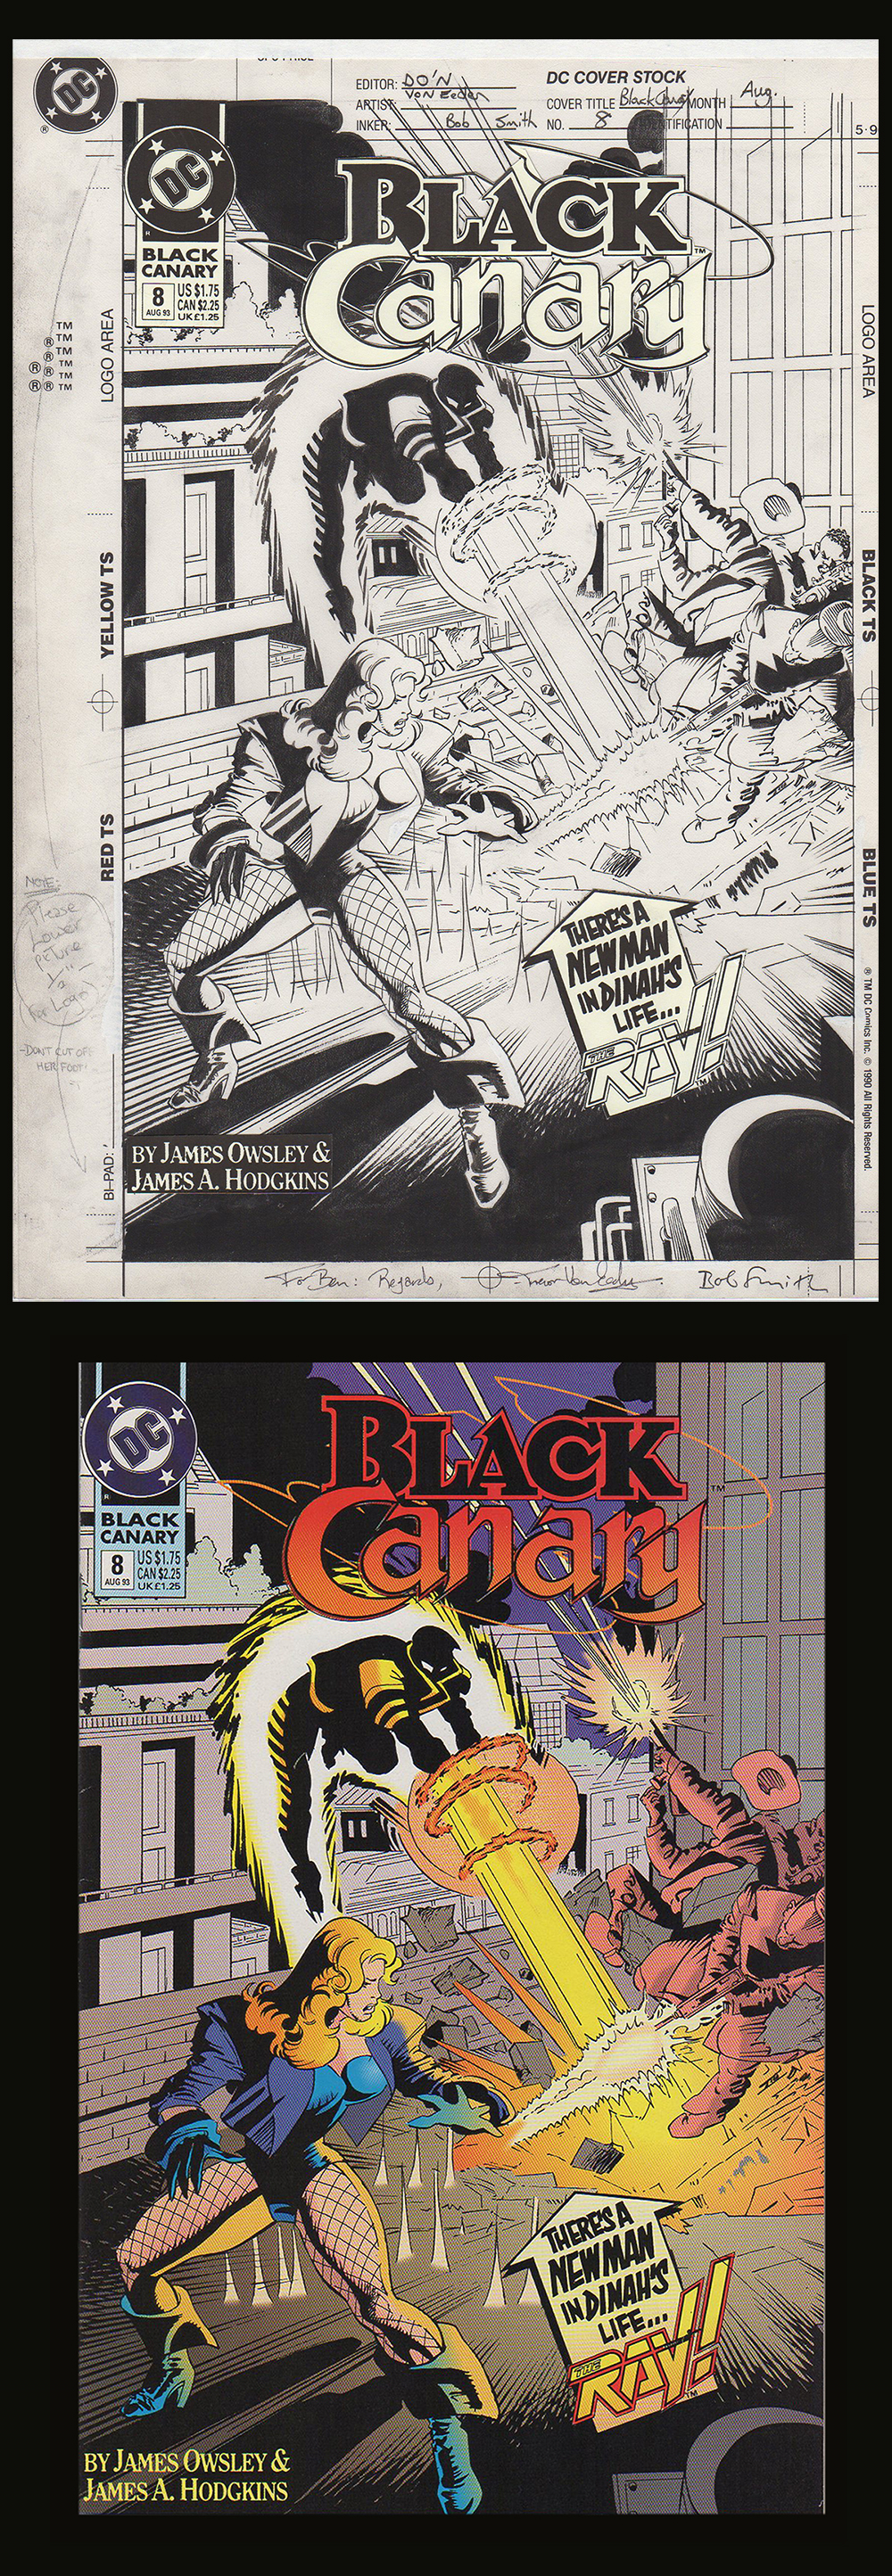 Image: Black Canary #8 Cover Art by Trevor Von Eeden